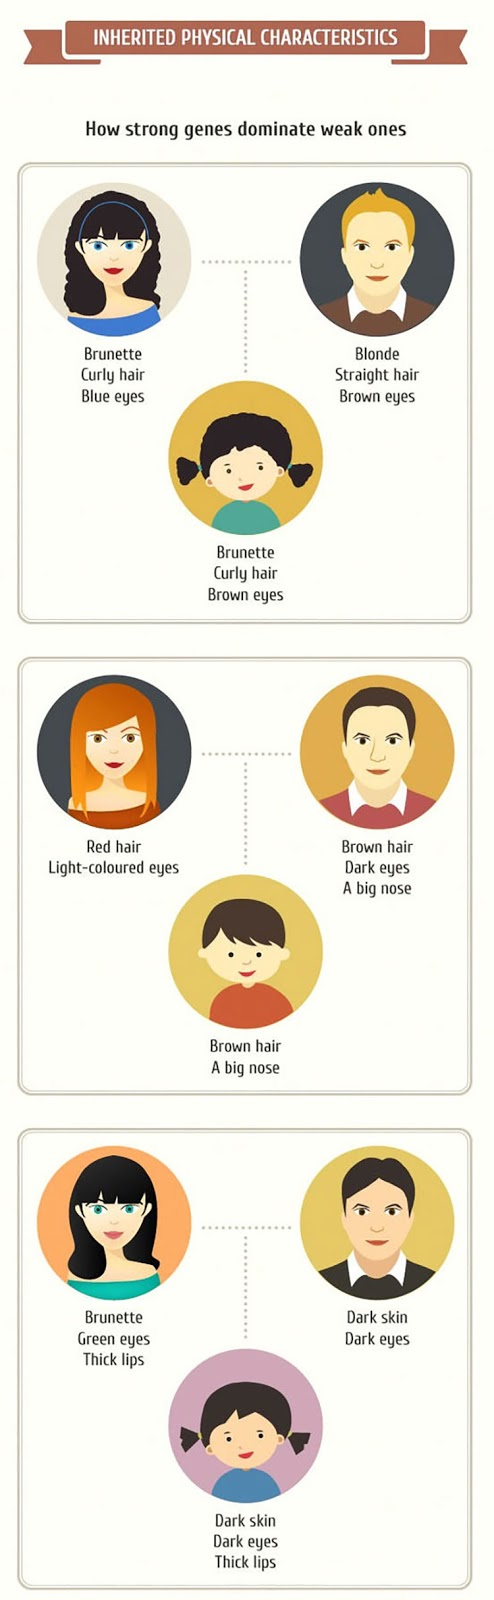 Do You Wish To Know What Your Kids Will Look Like? This Can Help You!